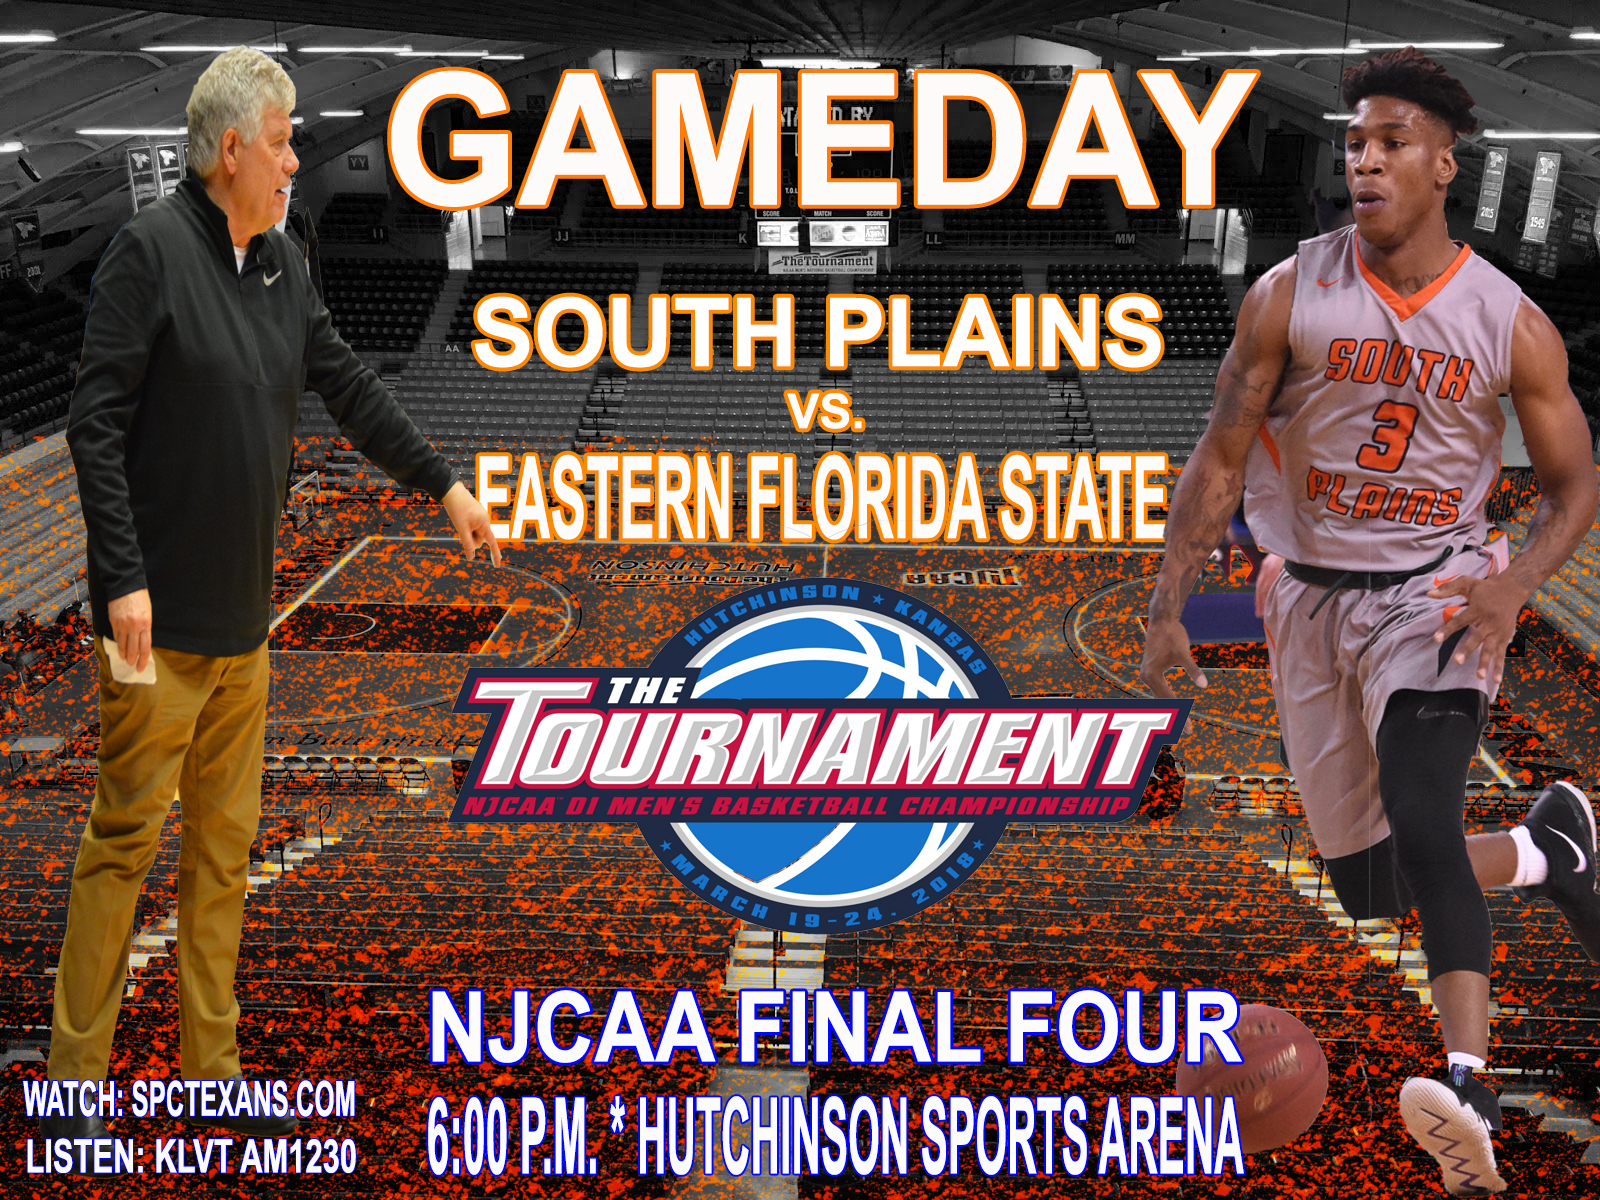 South Plains vs. Eastern Florida State Final Four preview